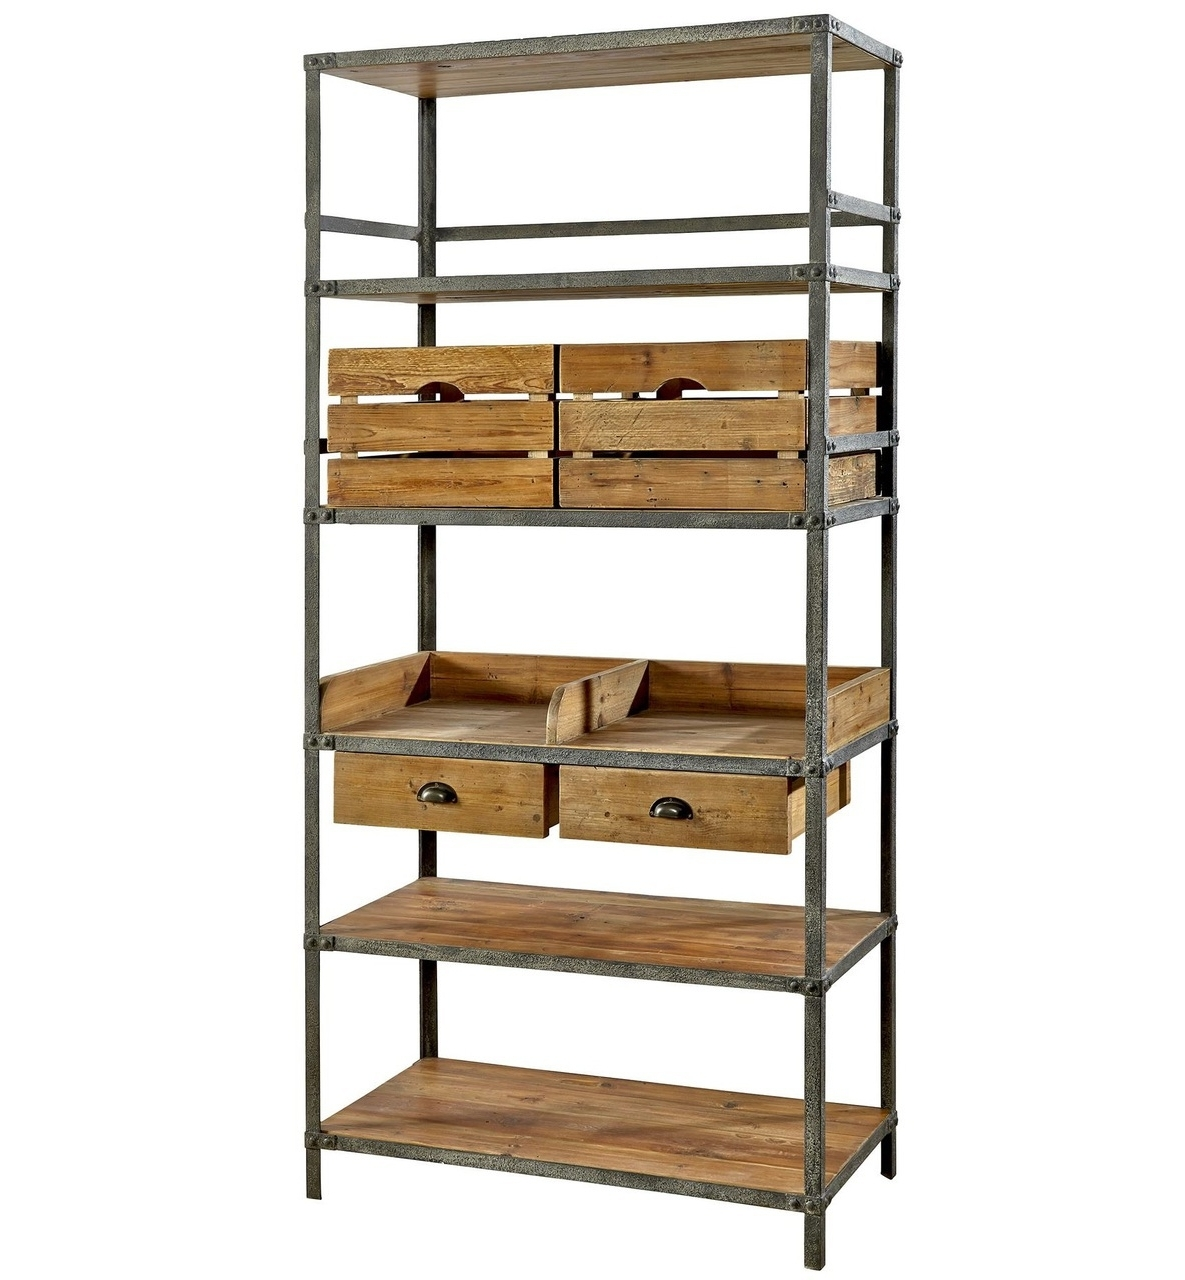 Iron And Wood Bookcases Within Well Known Bookcases Ideas: Bookcases Wood Metal And Glass Crate And Barrel (View 10 of 15)